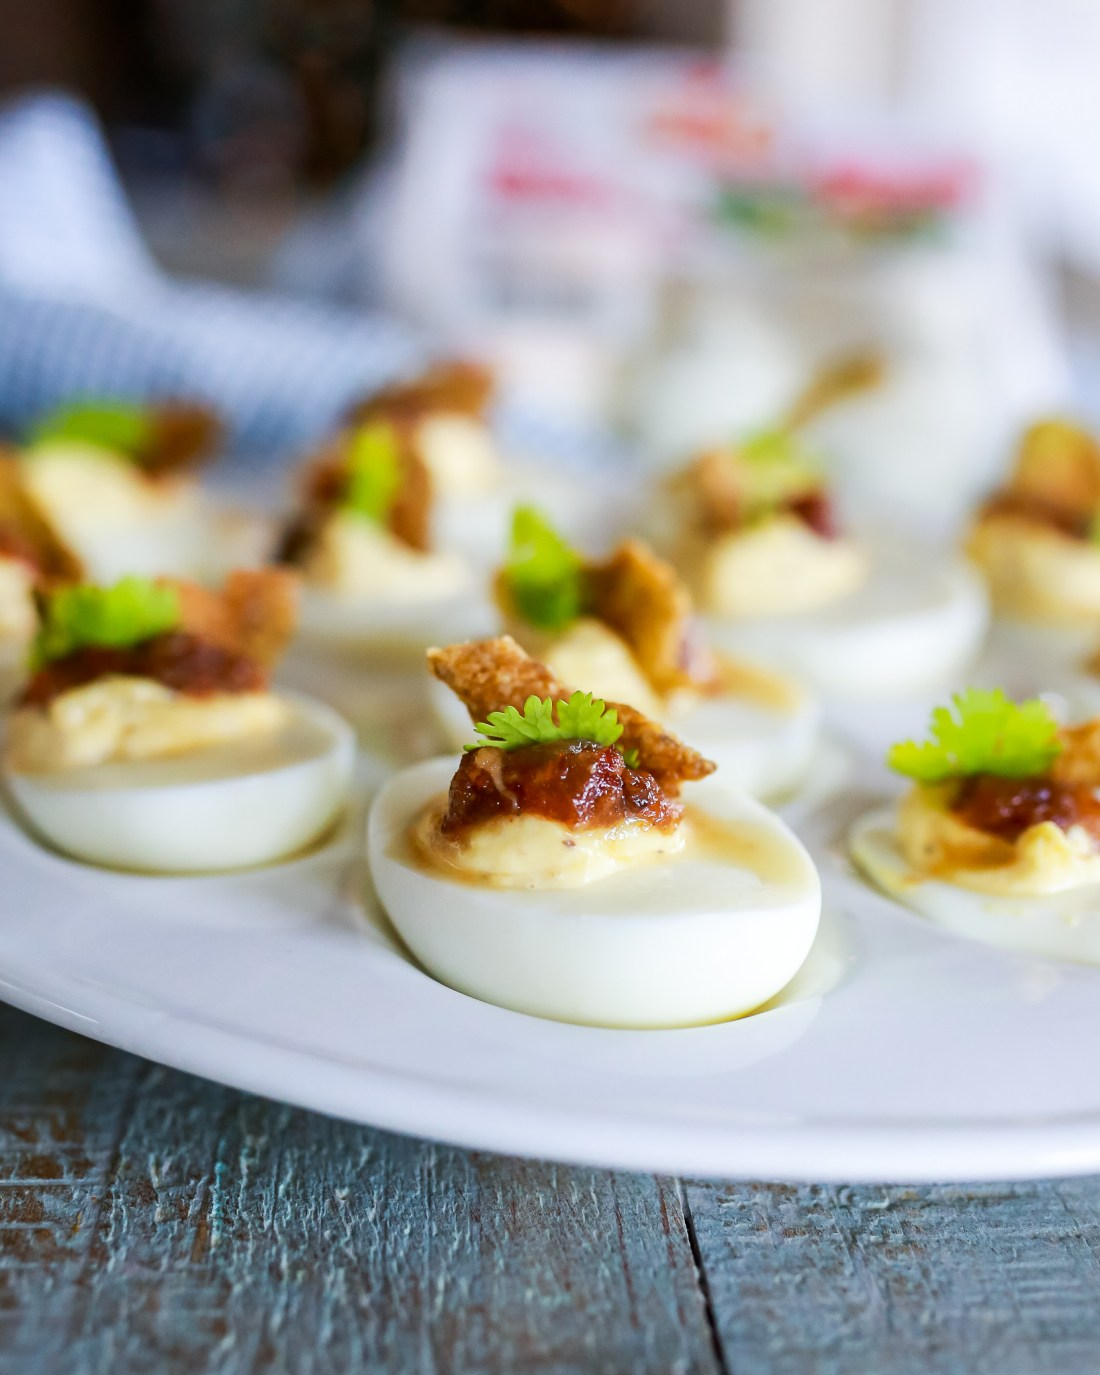 best party food: deviled eggs!